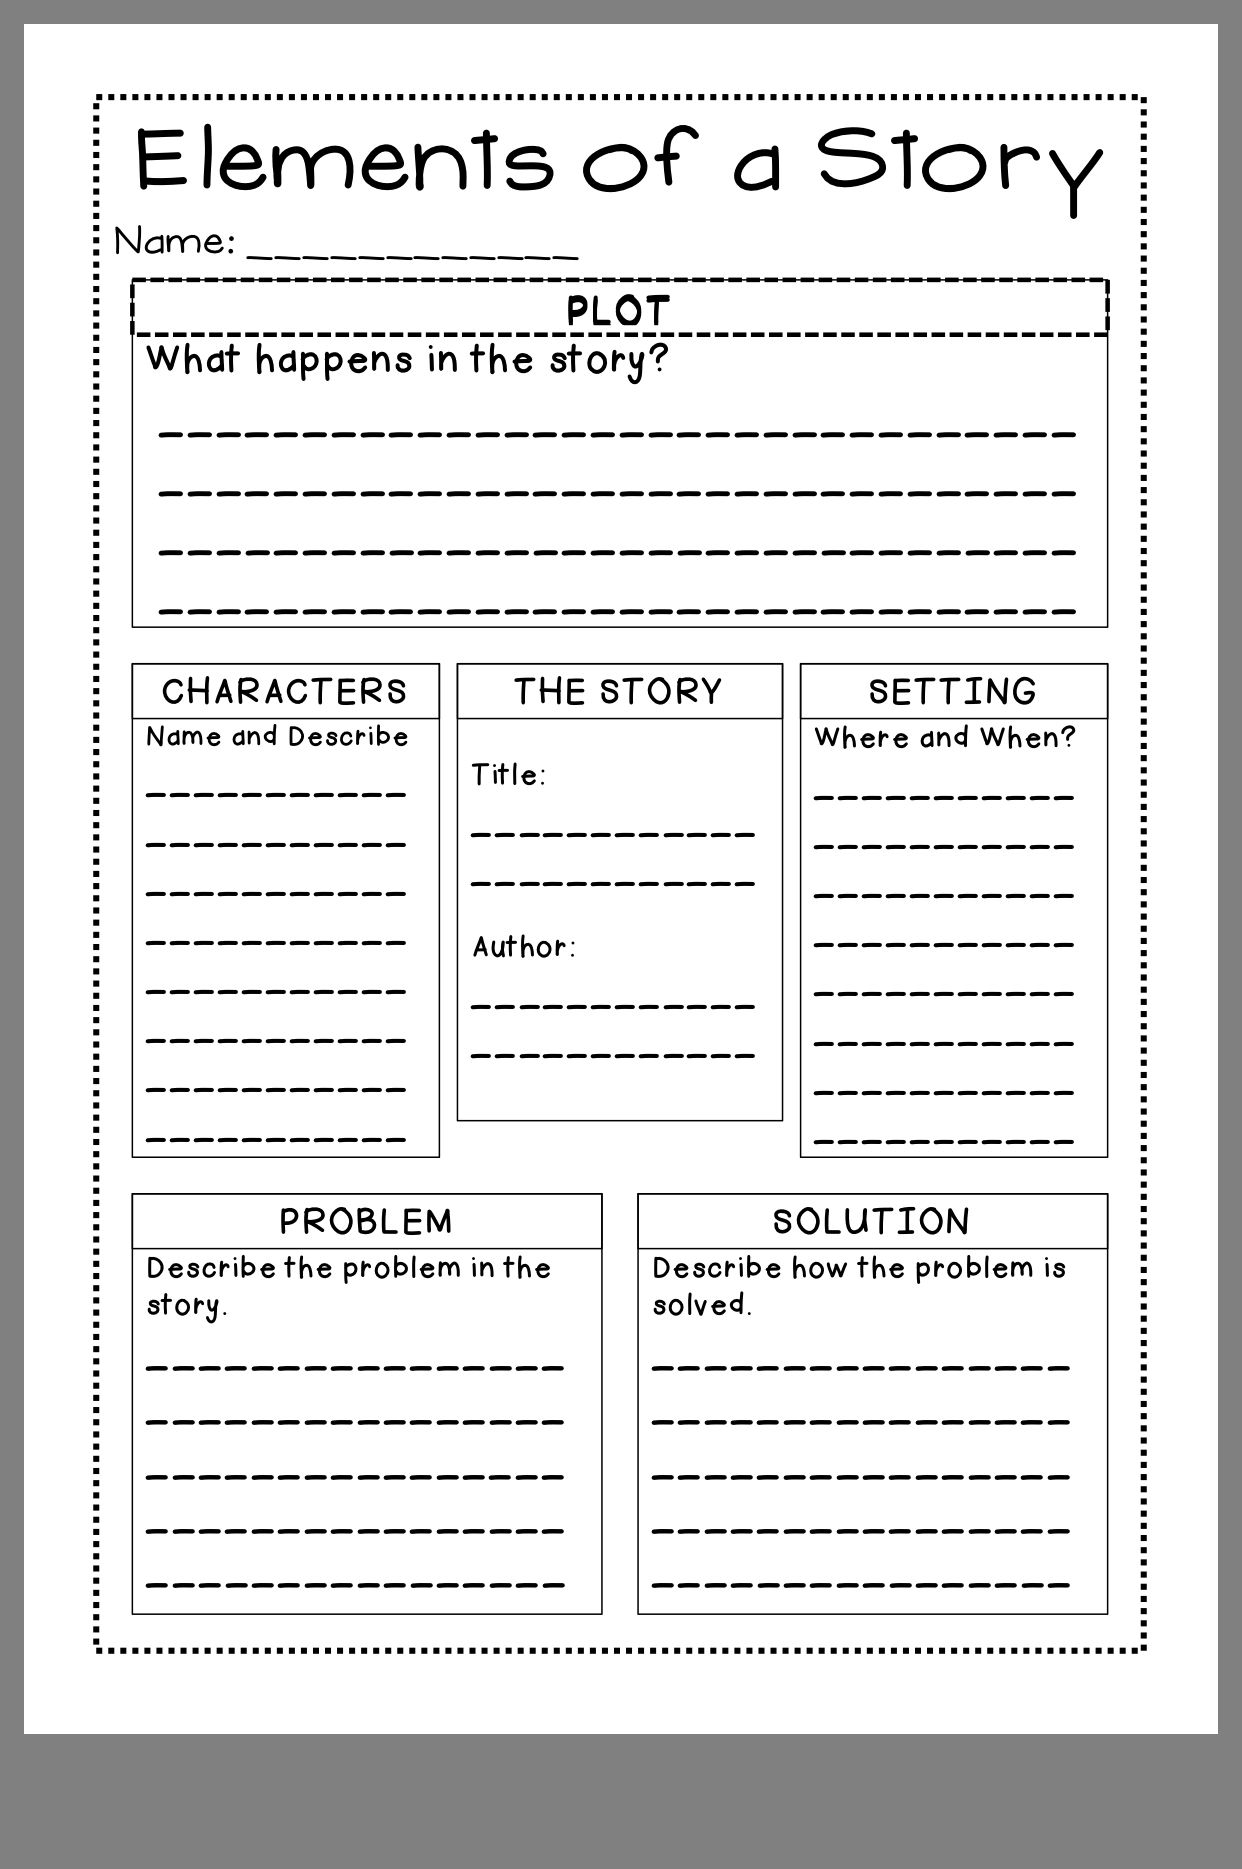 Pin By Joyce Flores On Writing Texhiques Story Elements Worksheet Story Elements Cursive Writing Practice Sheets